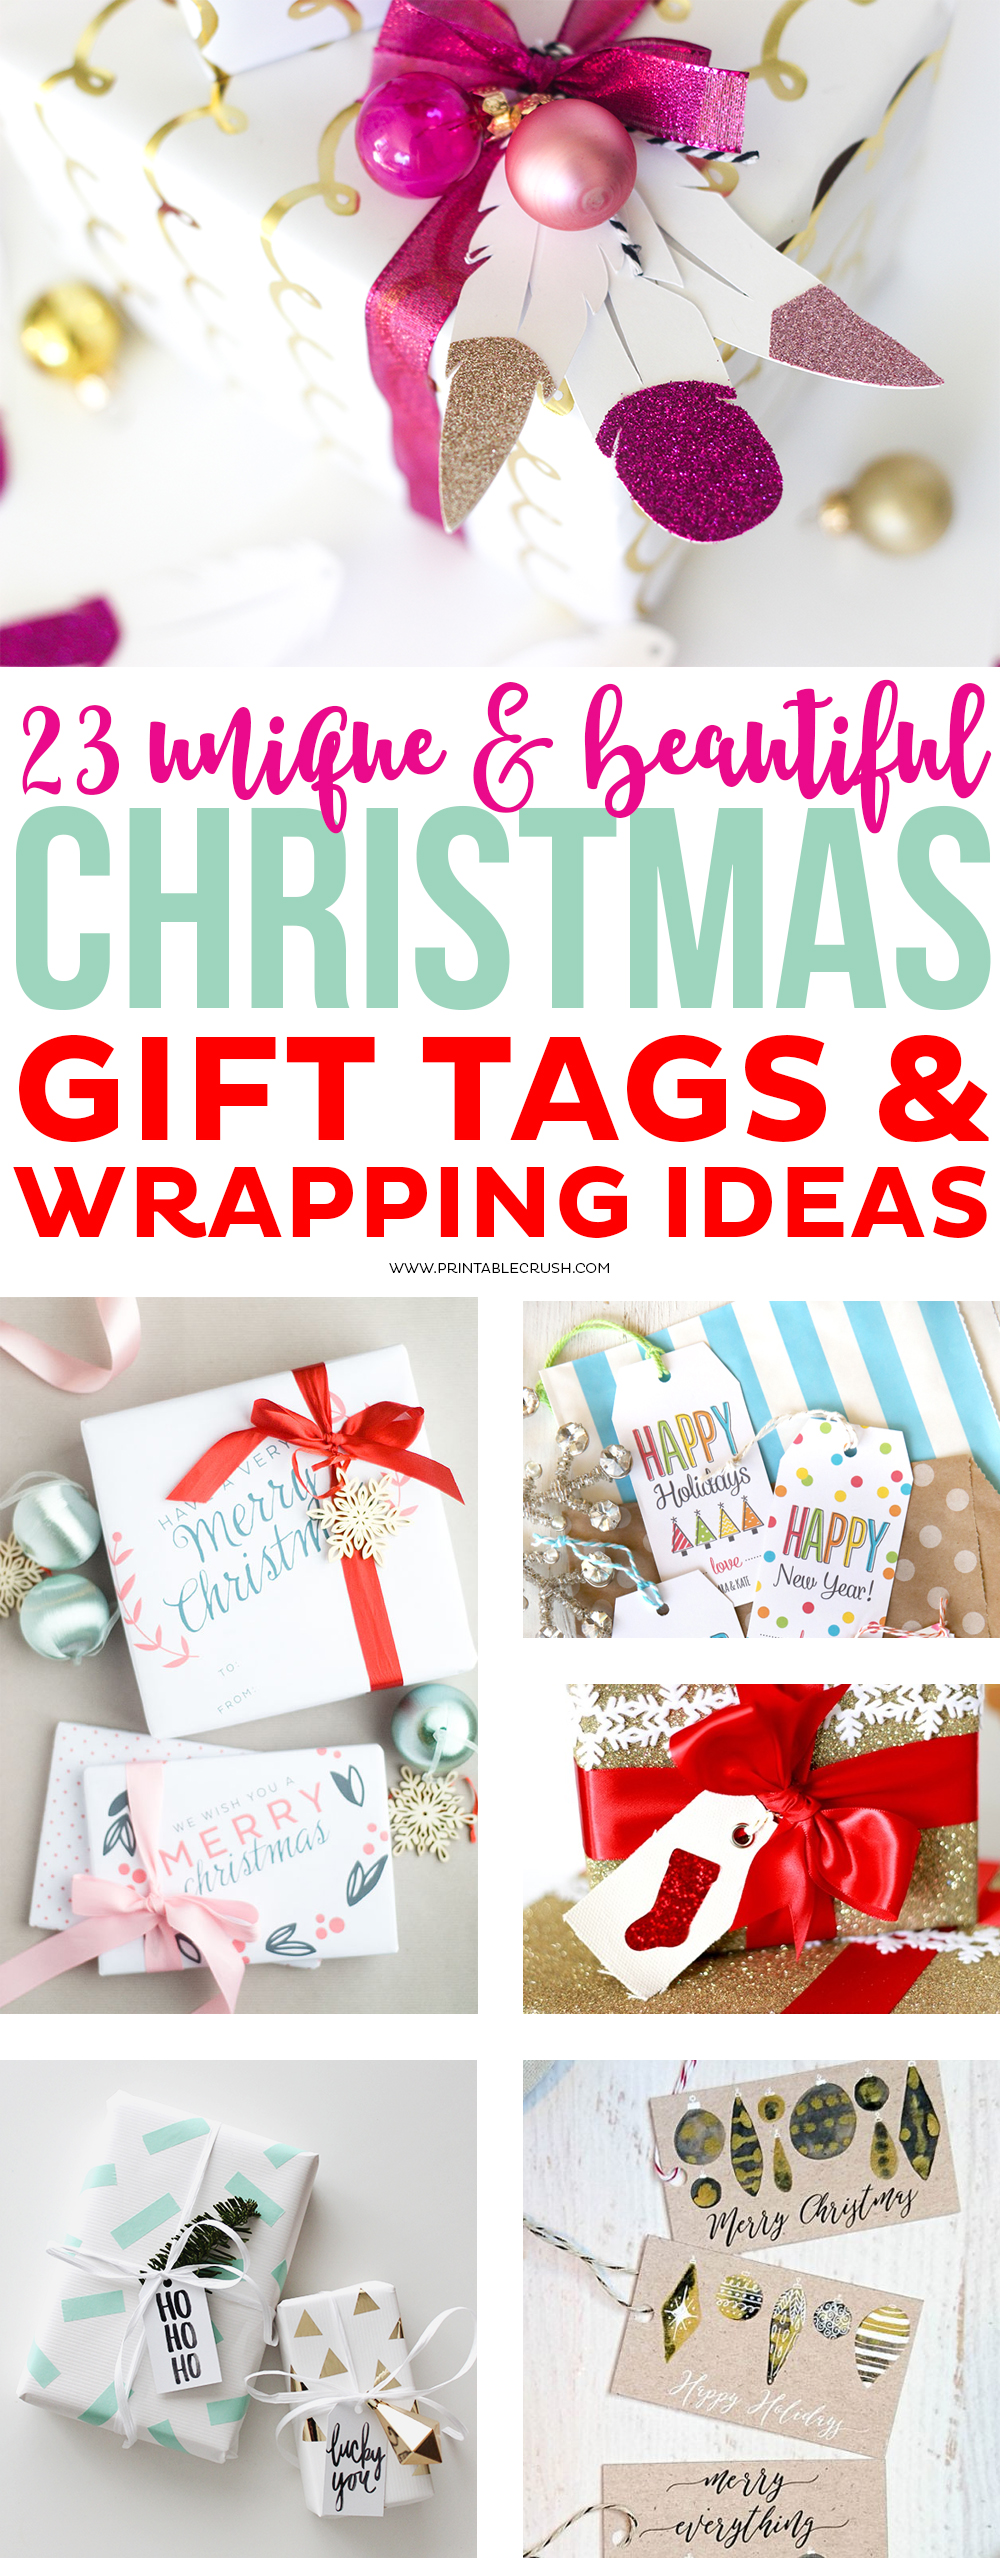 23 Unique Christmas Gift Tags And Wrapping Ideas Printable Crush